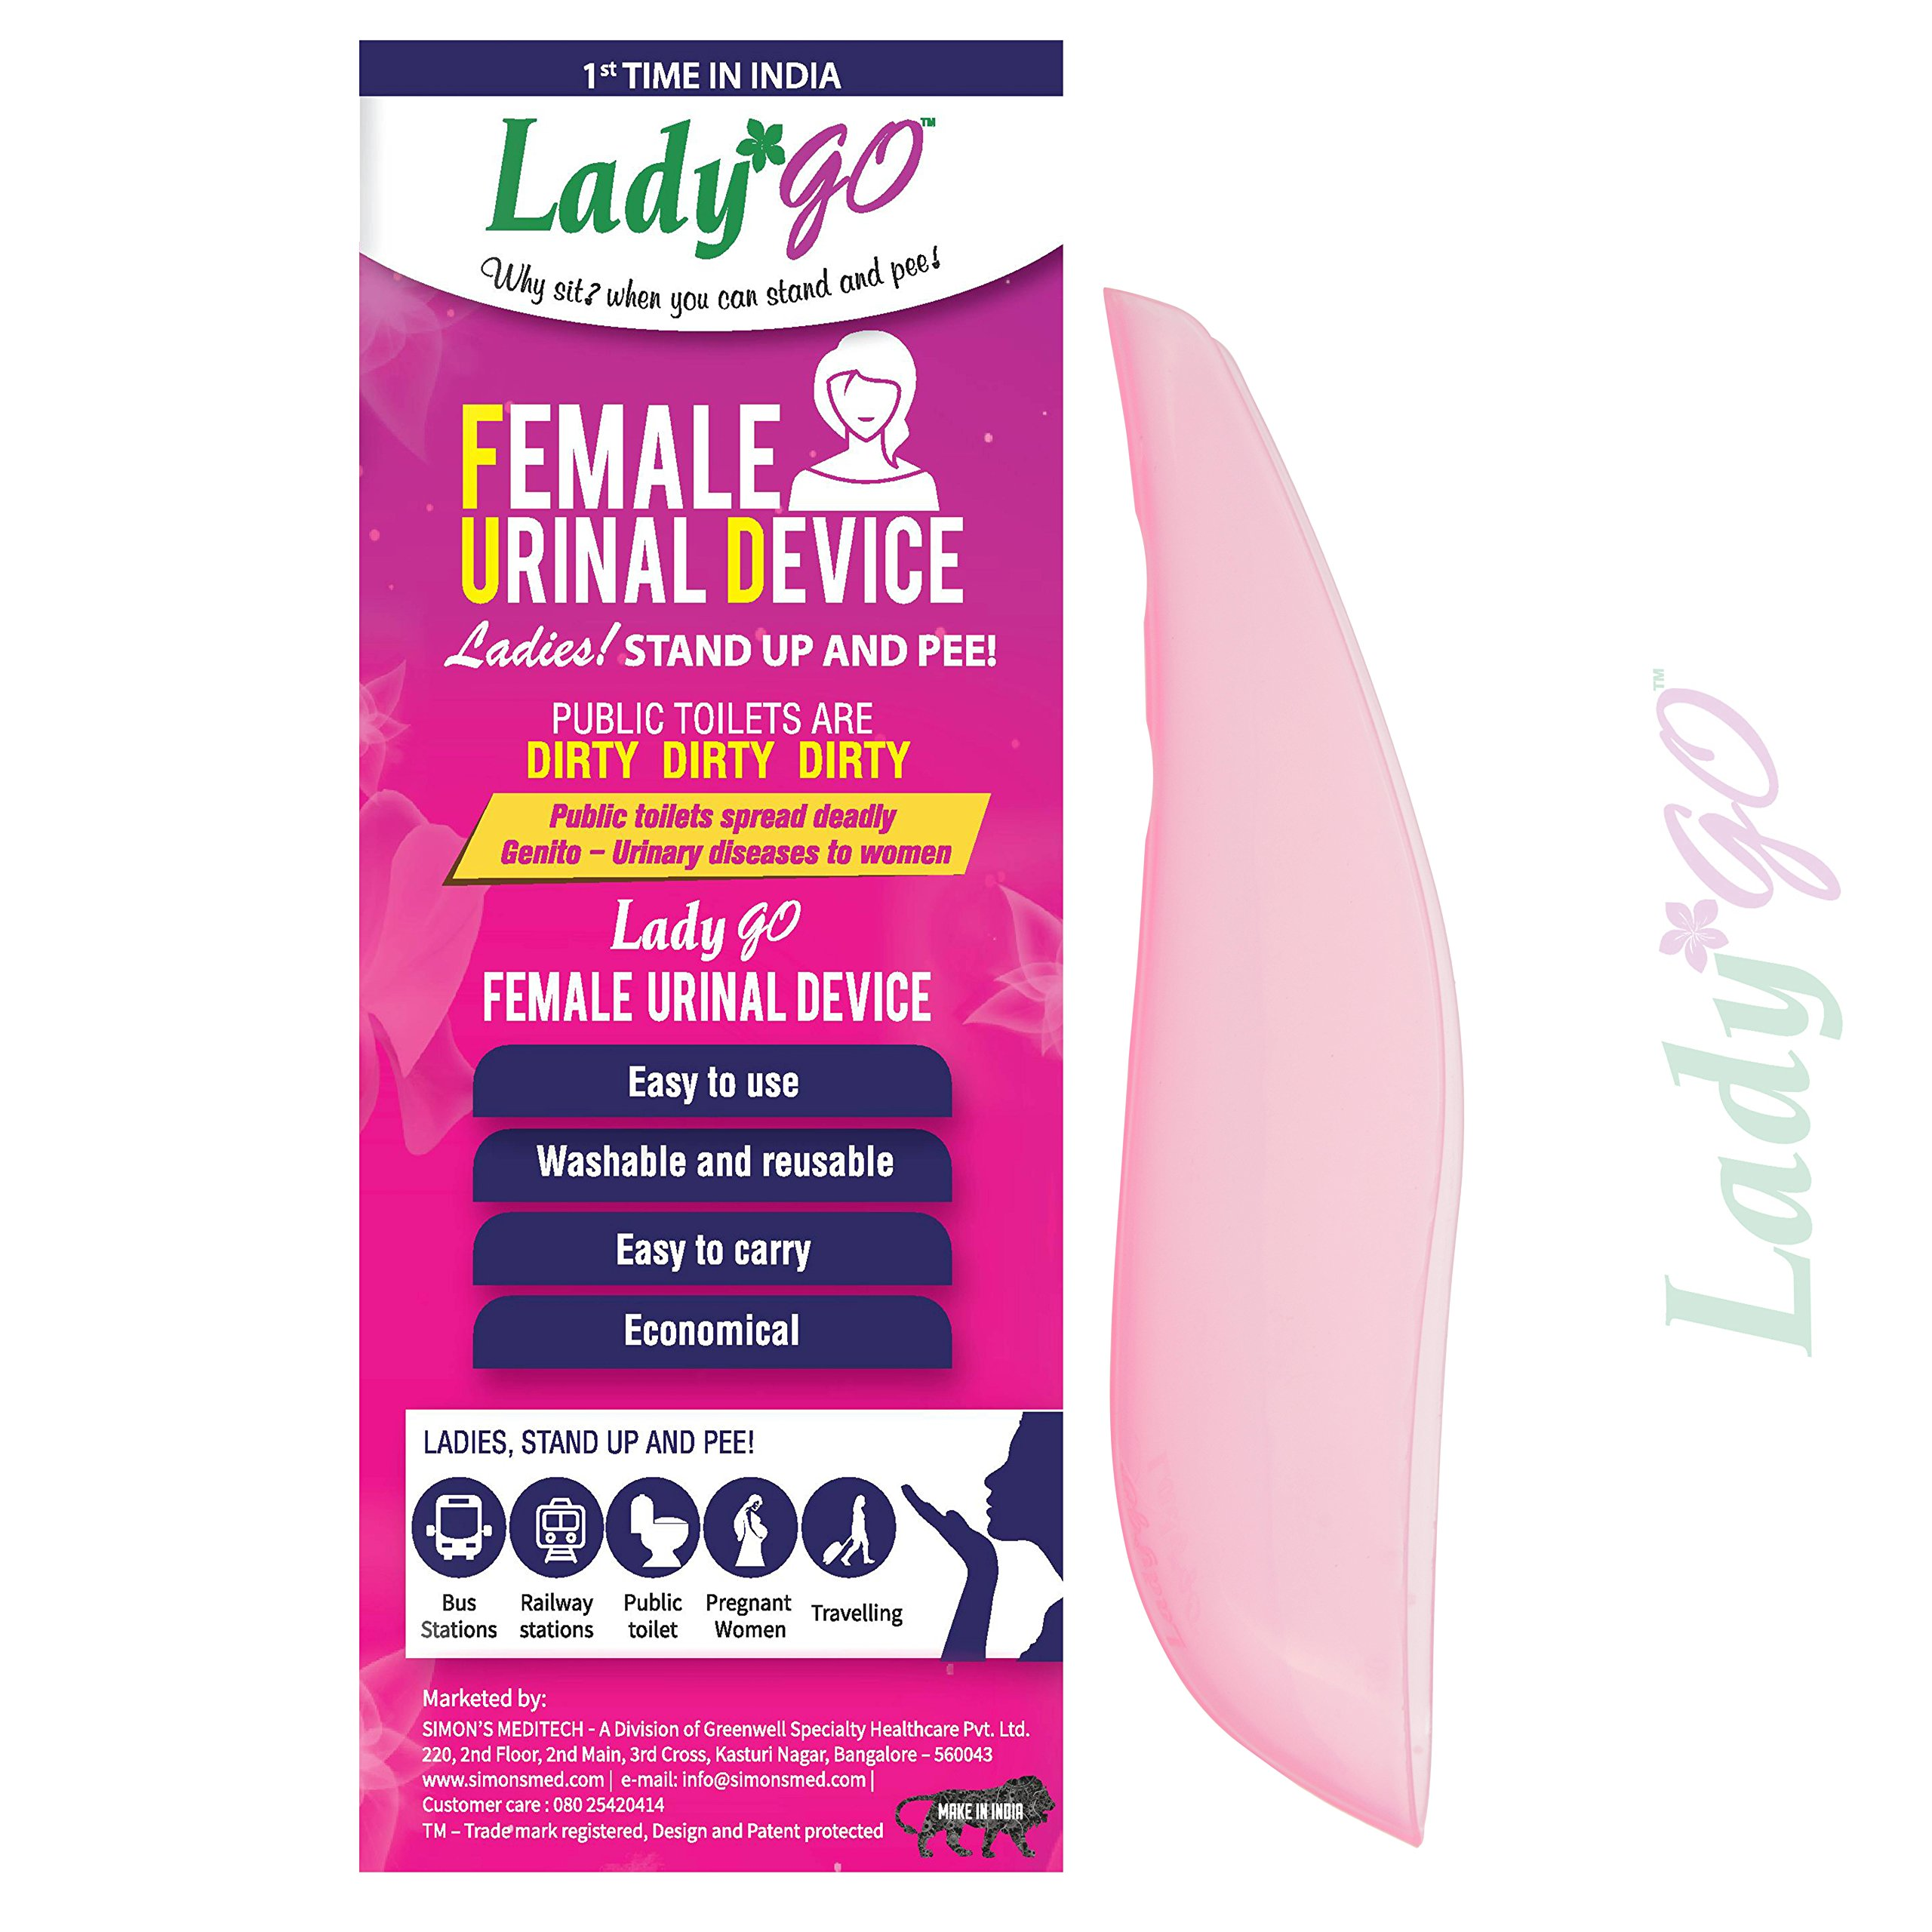 LadyGo - Reusable Female Urinal Device(FUD) - Stand-up and pee - Pink (Pack Of 1) product image